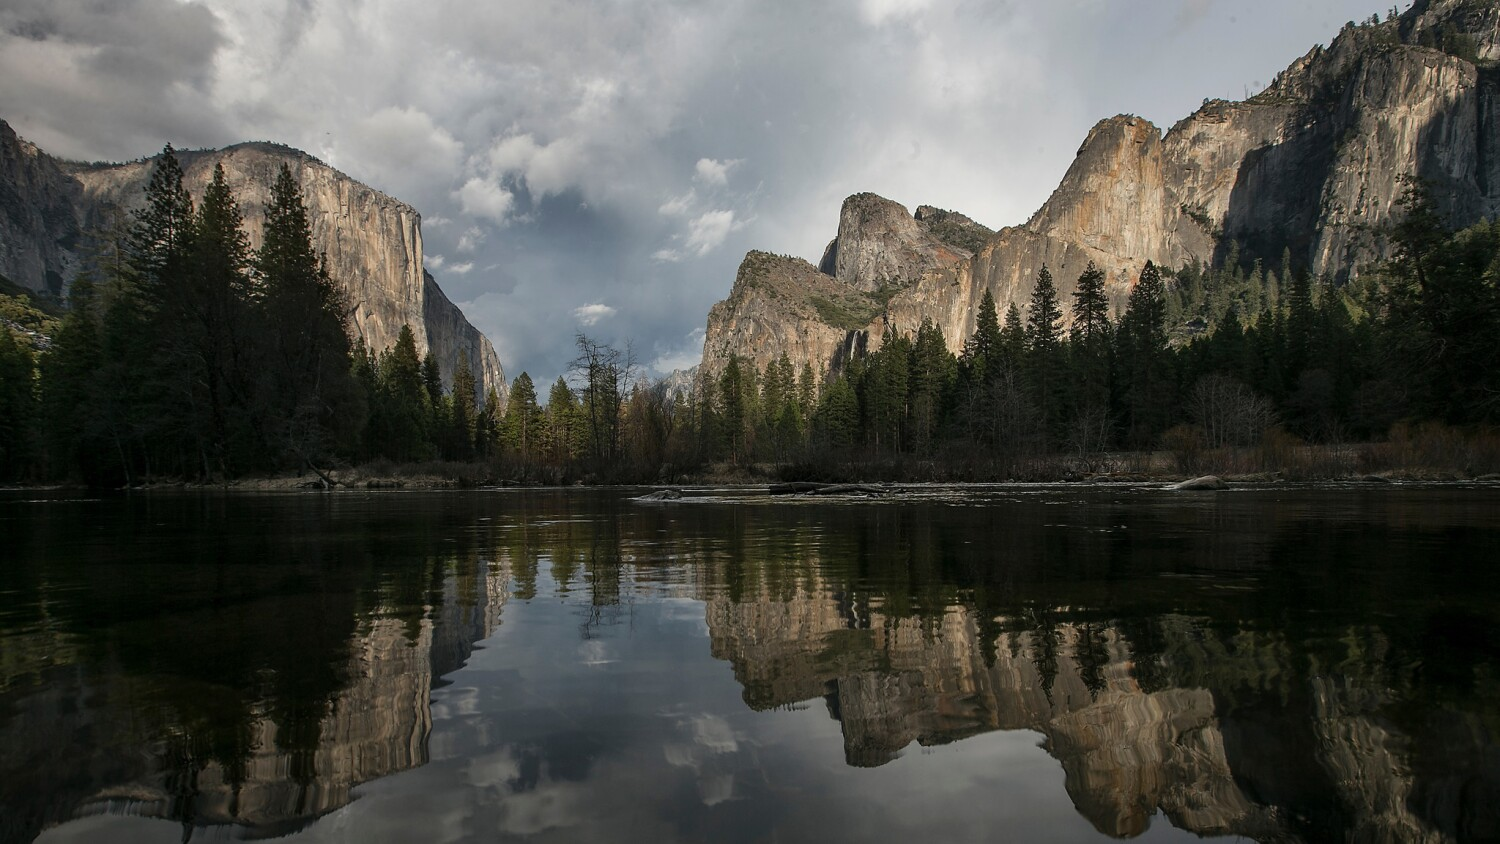 About 170 people sickened at Yosemite with gastrointestinal illness